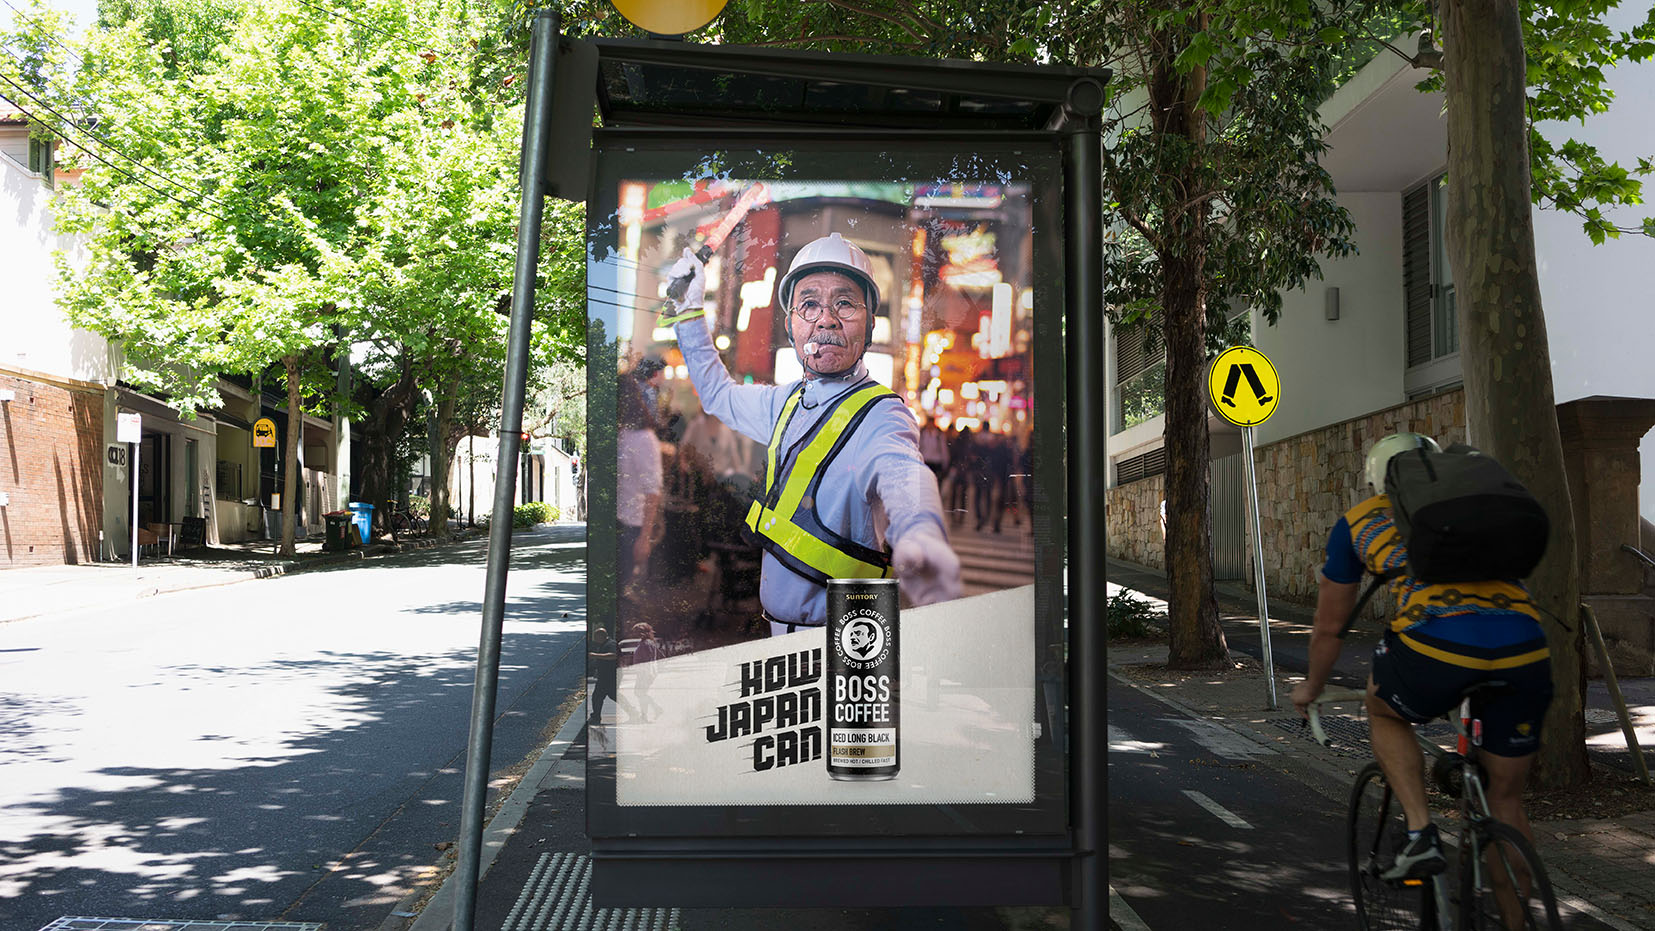 Marketforce collaborates on BOSS Coffee launch campaign via Clemenger BBDO Sydney